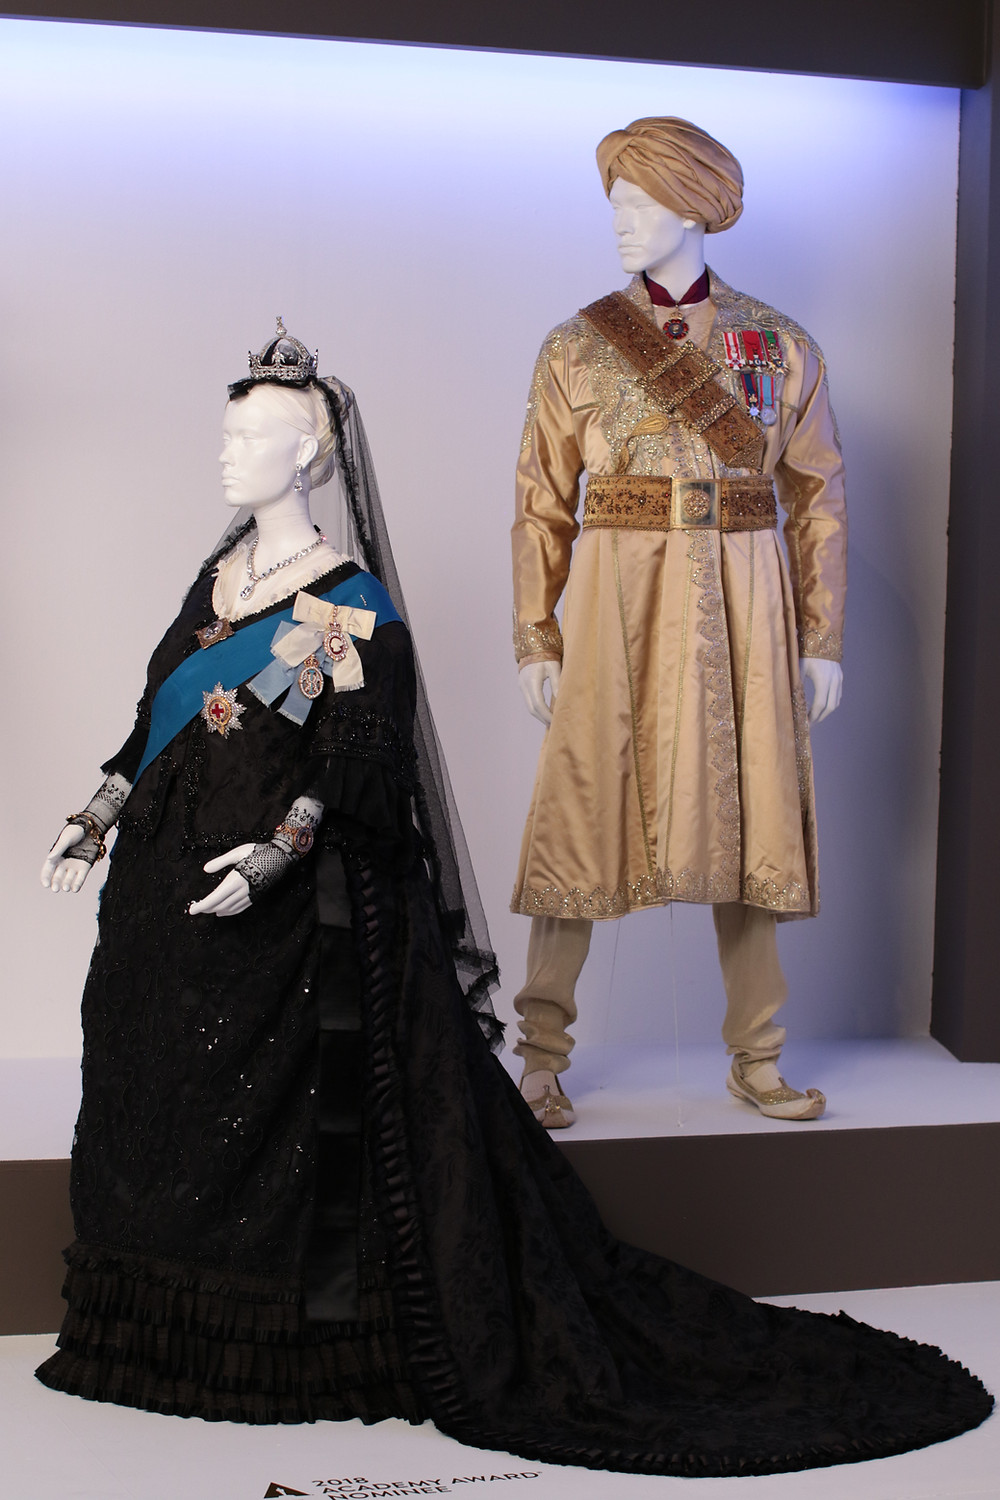 """Victoria & Abdul"" costumes by Consolata Boyle, Academy Award nominee for Costume Design. (L to R) Costumes worn by actors: Ali Fazal as Abdul Karim, Judi Dench as Queen Victoria."